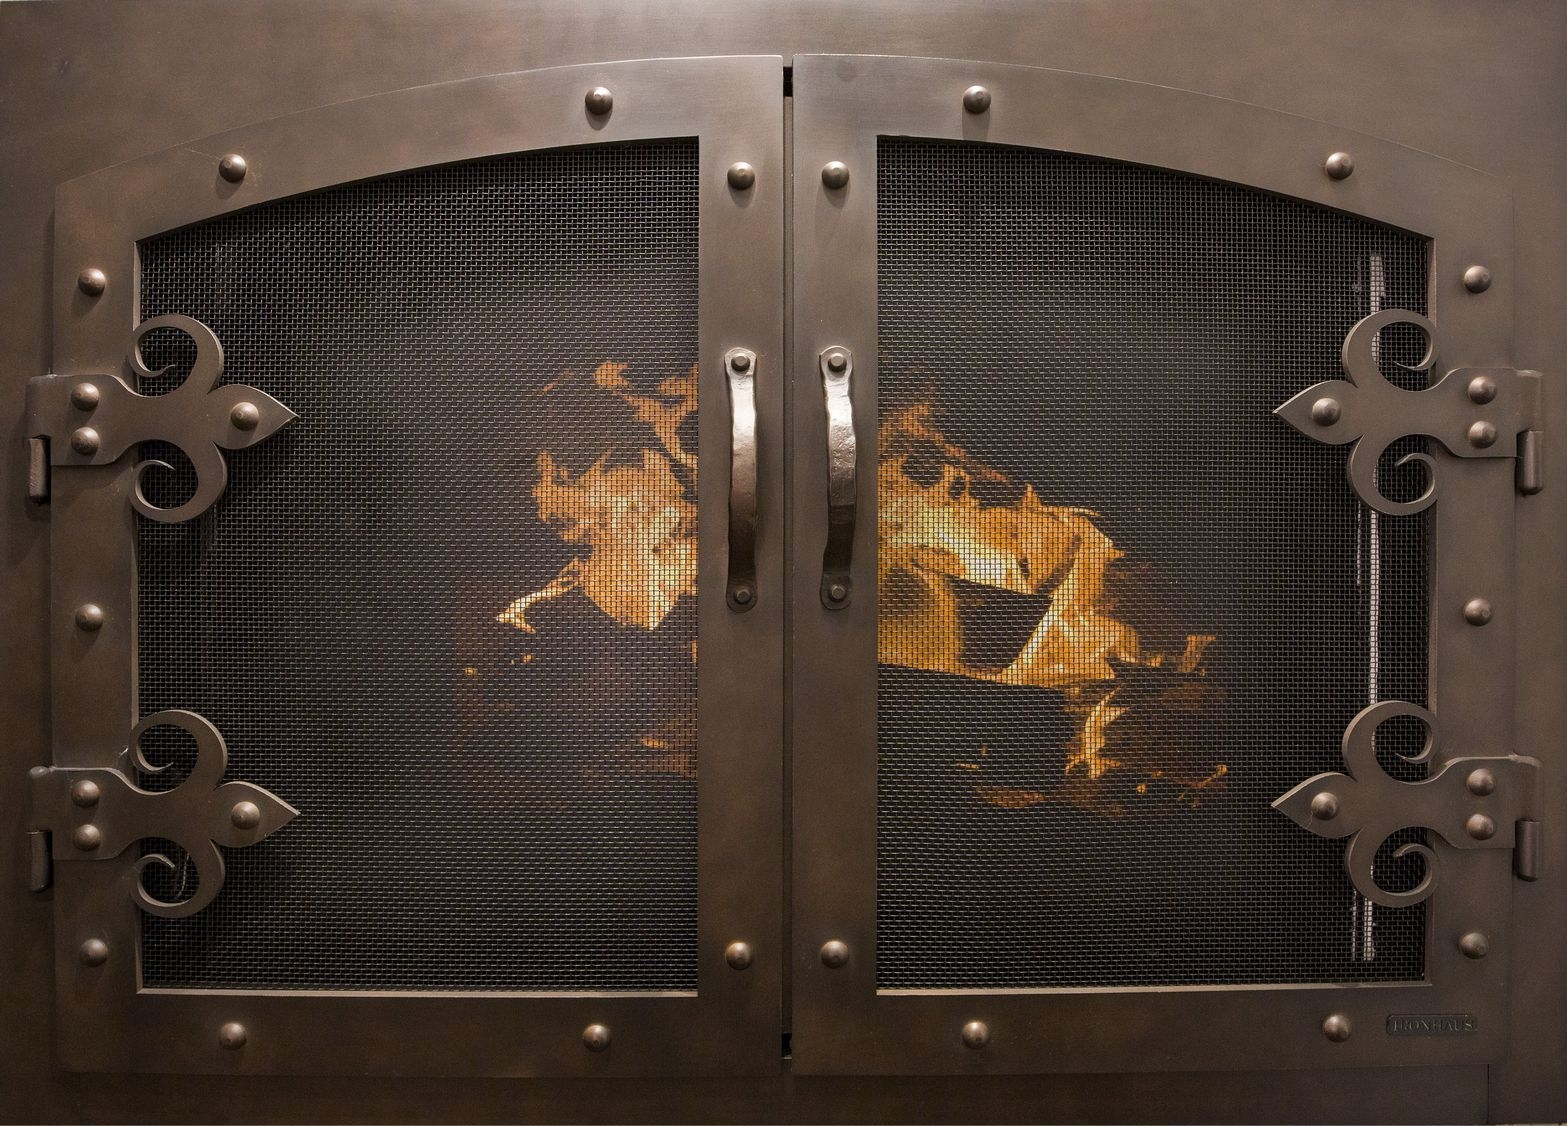 Portland Willamette Steel Door - Grand Forge II Door Brushed Black Copper Finish With Fleur-de-lis Hinge